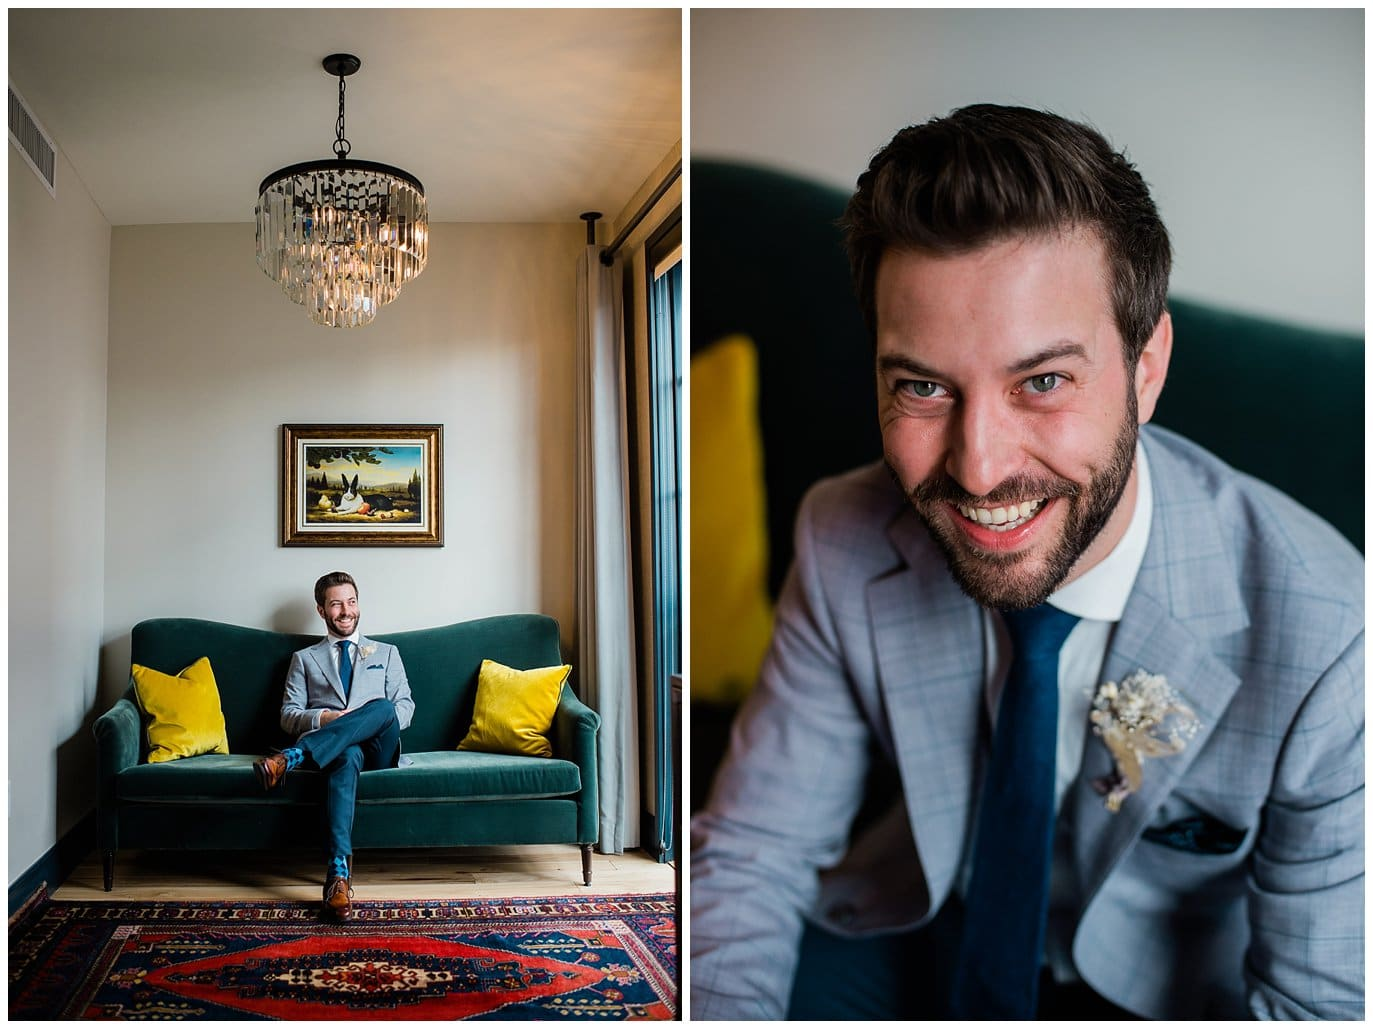 groom at Ramble hotel by Blanc Wedding Photographer Jennie Crate